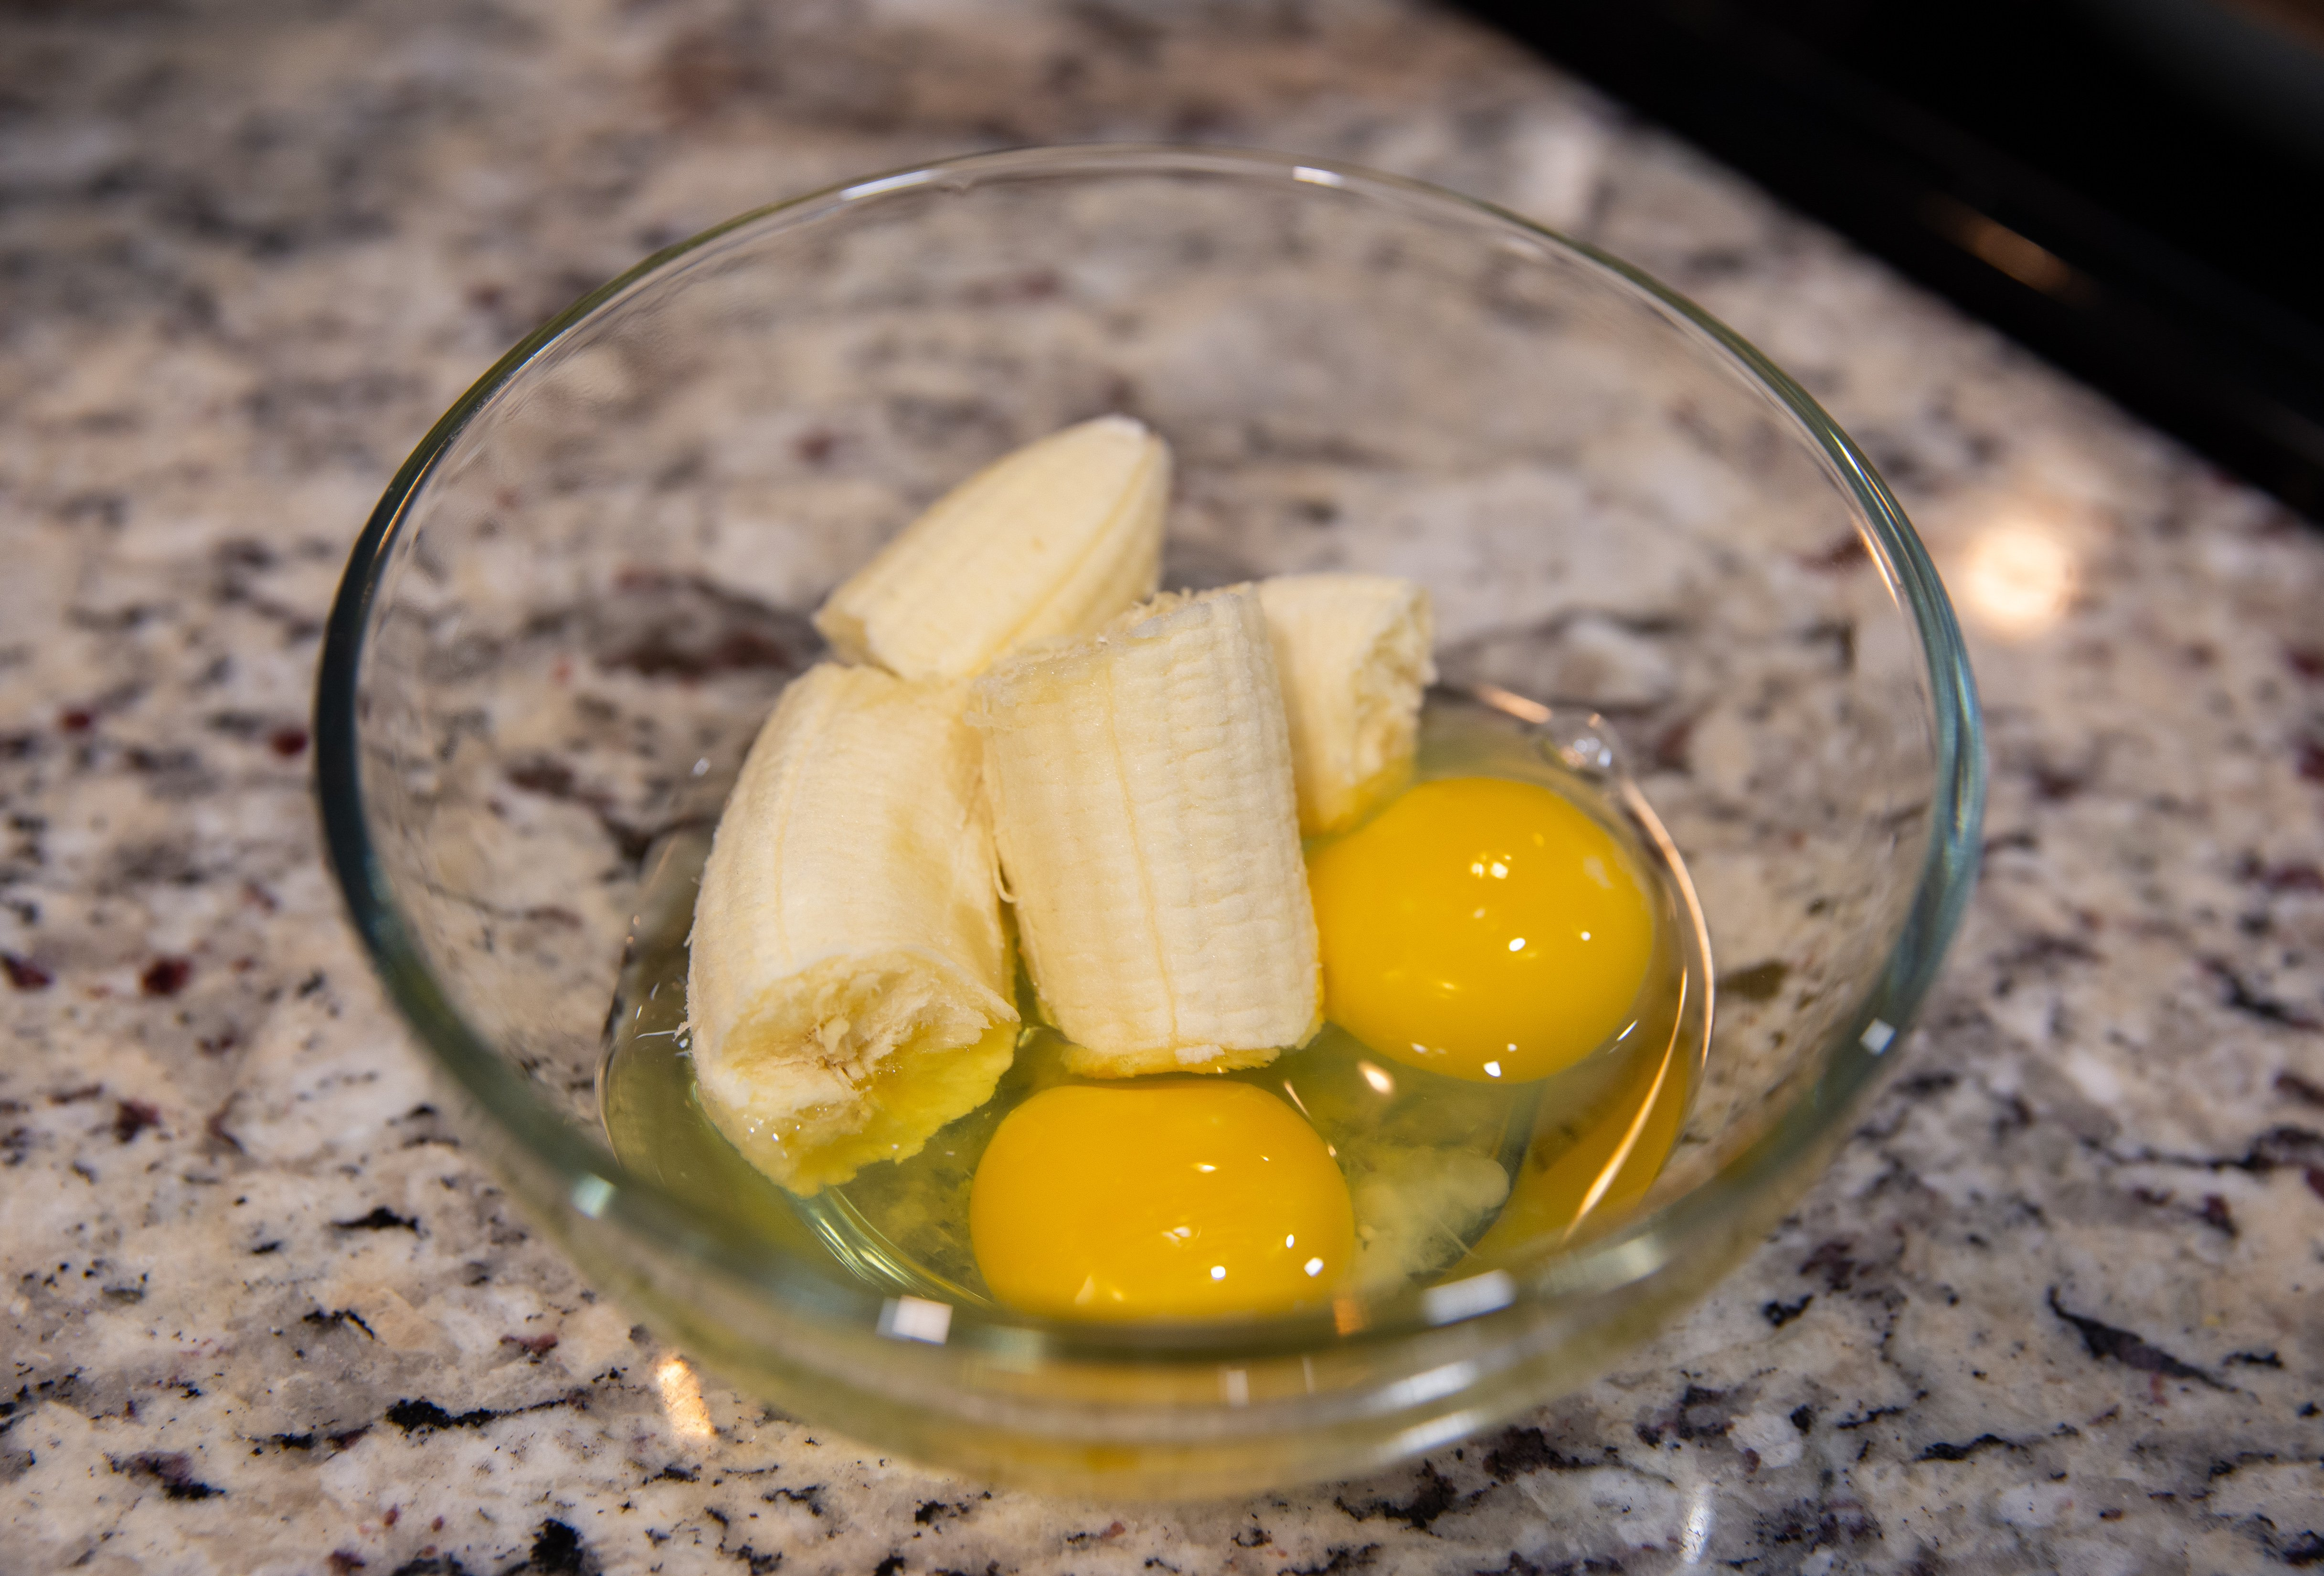 Close up of the cracked eggs and broken banana in a bowl.